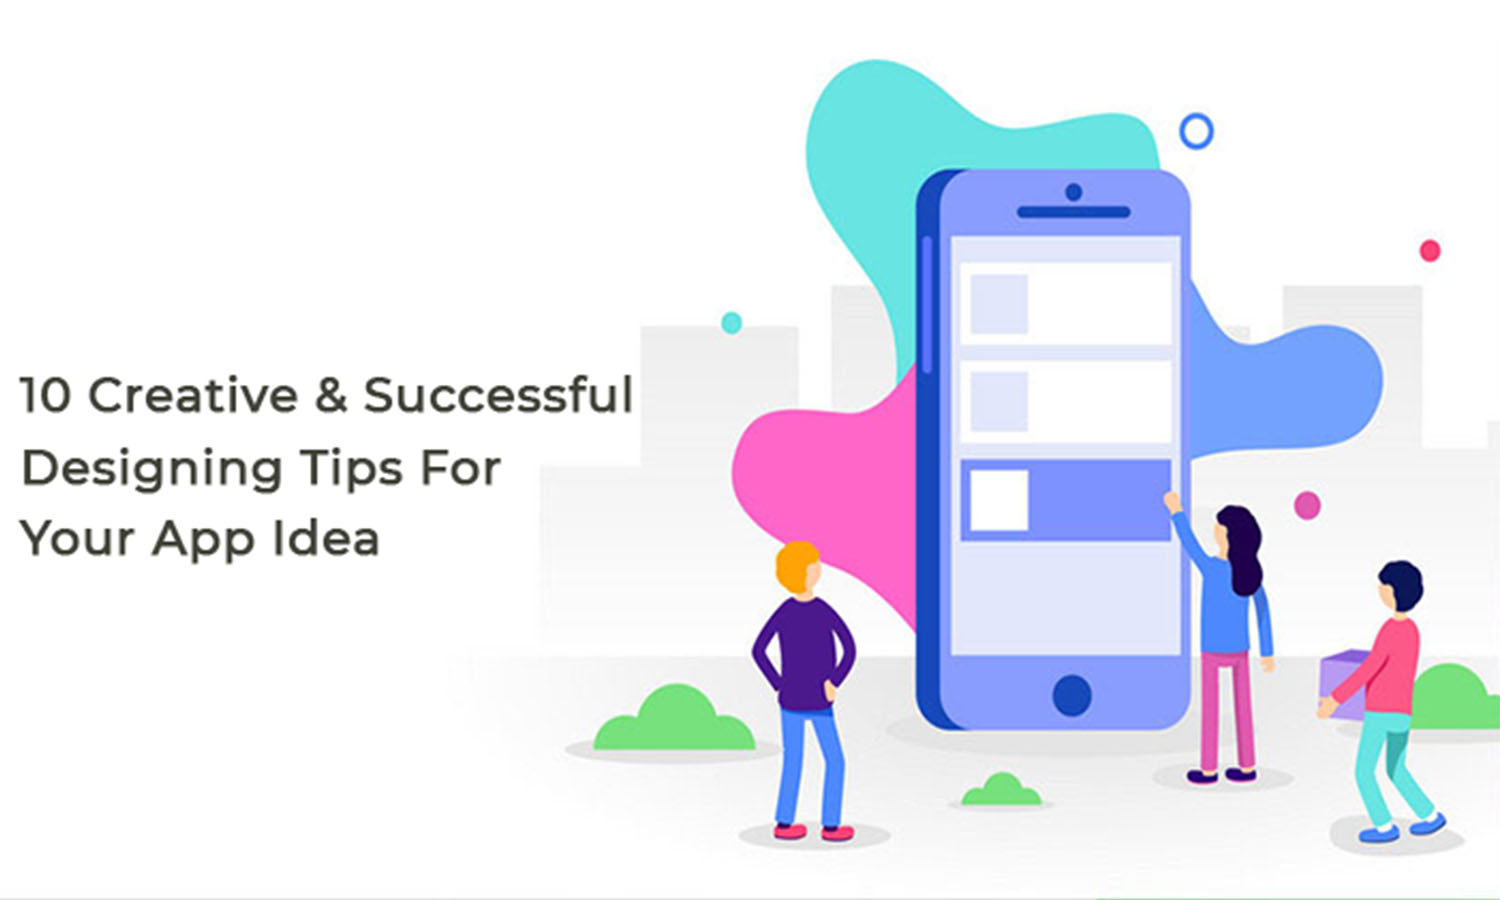 10 Creative & Successful Designing Tips in Mobile App Development